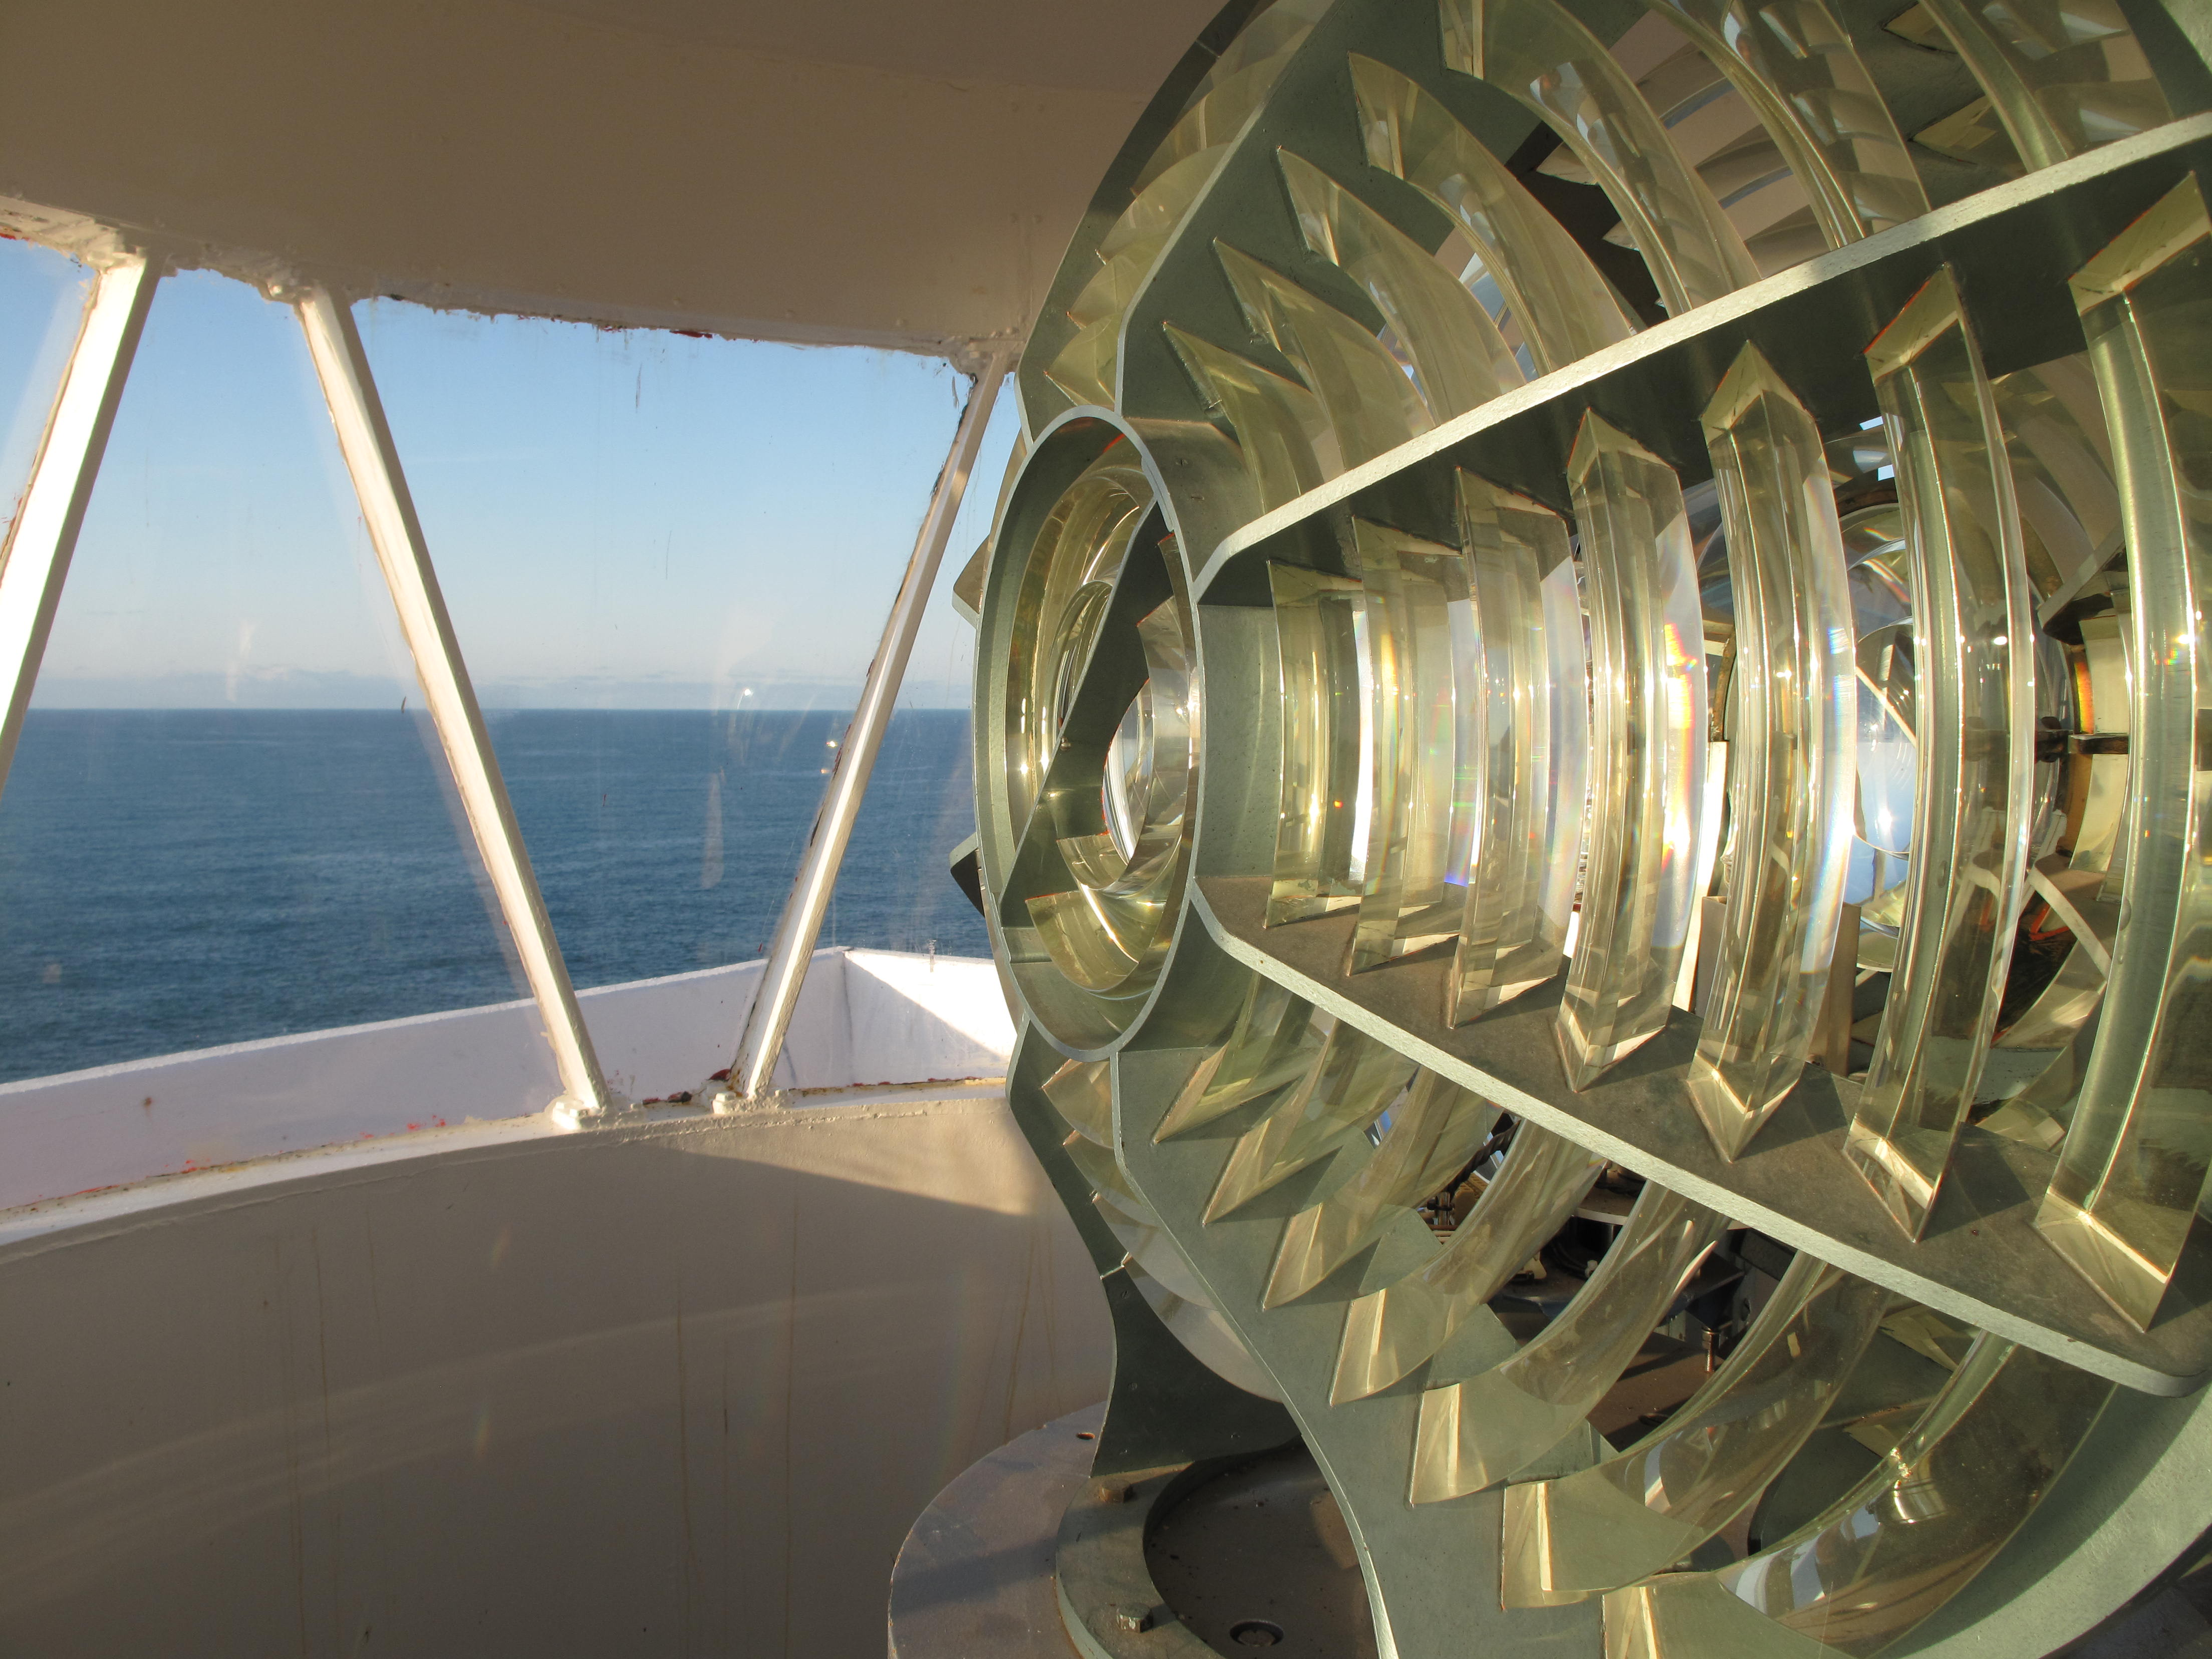 View inside lighthouse